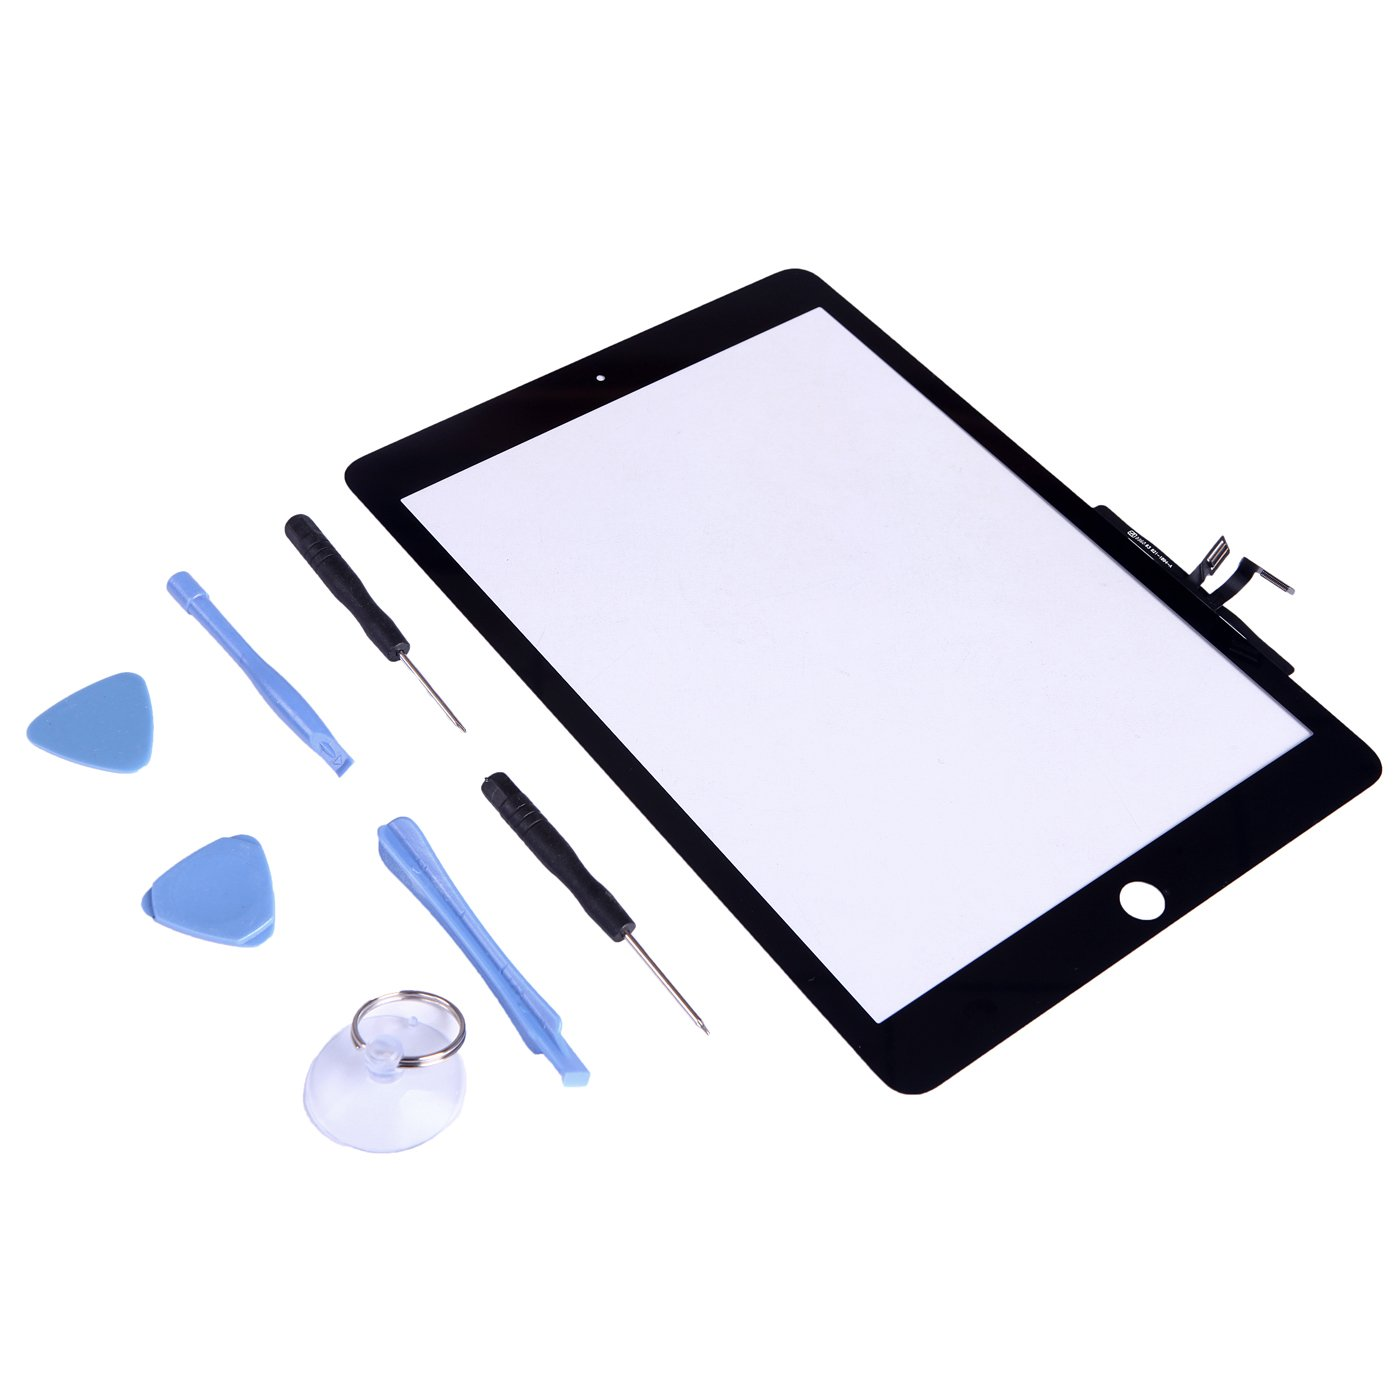 HDE iPad Air Replacement Screen Front Glass Touch Digitizer Assembly Tool Kit for Apple iPad Air 5th Generation Tablet (Black)